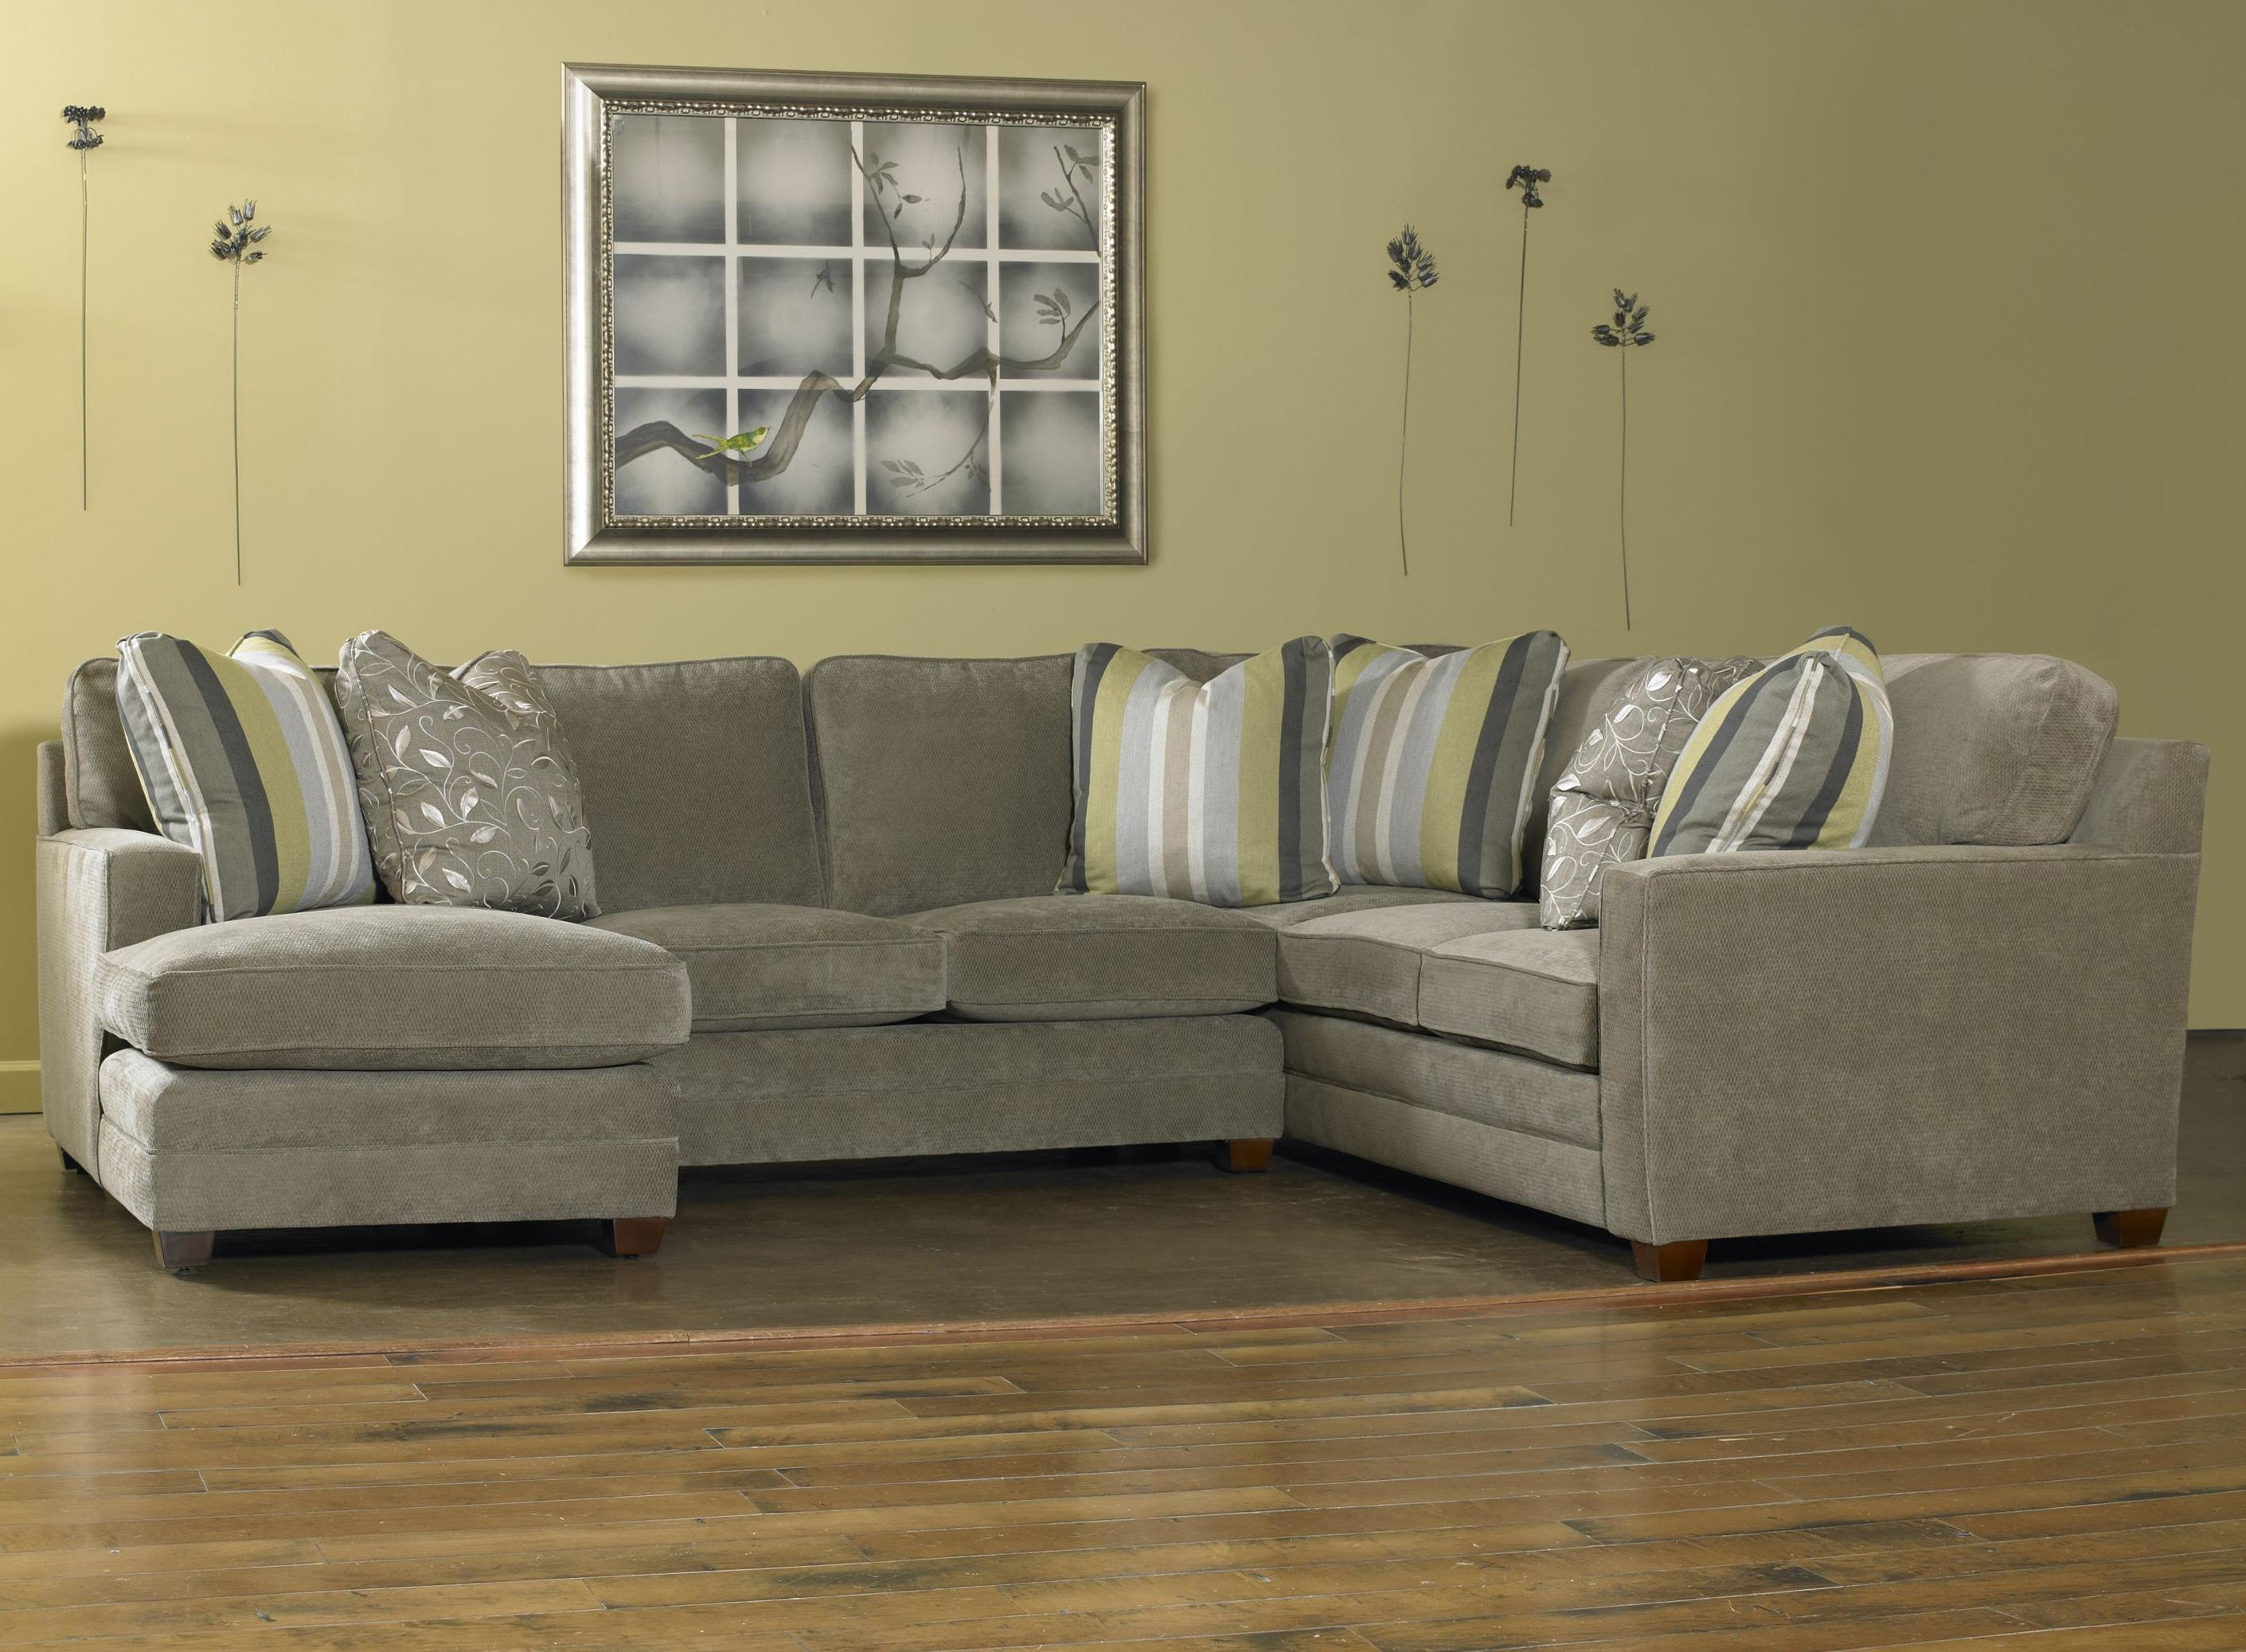 Sam Moore Wolf And Gardiner Furniture Inside Sofas Image 7 Of